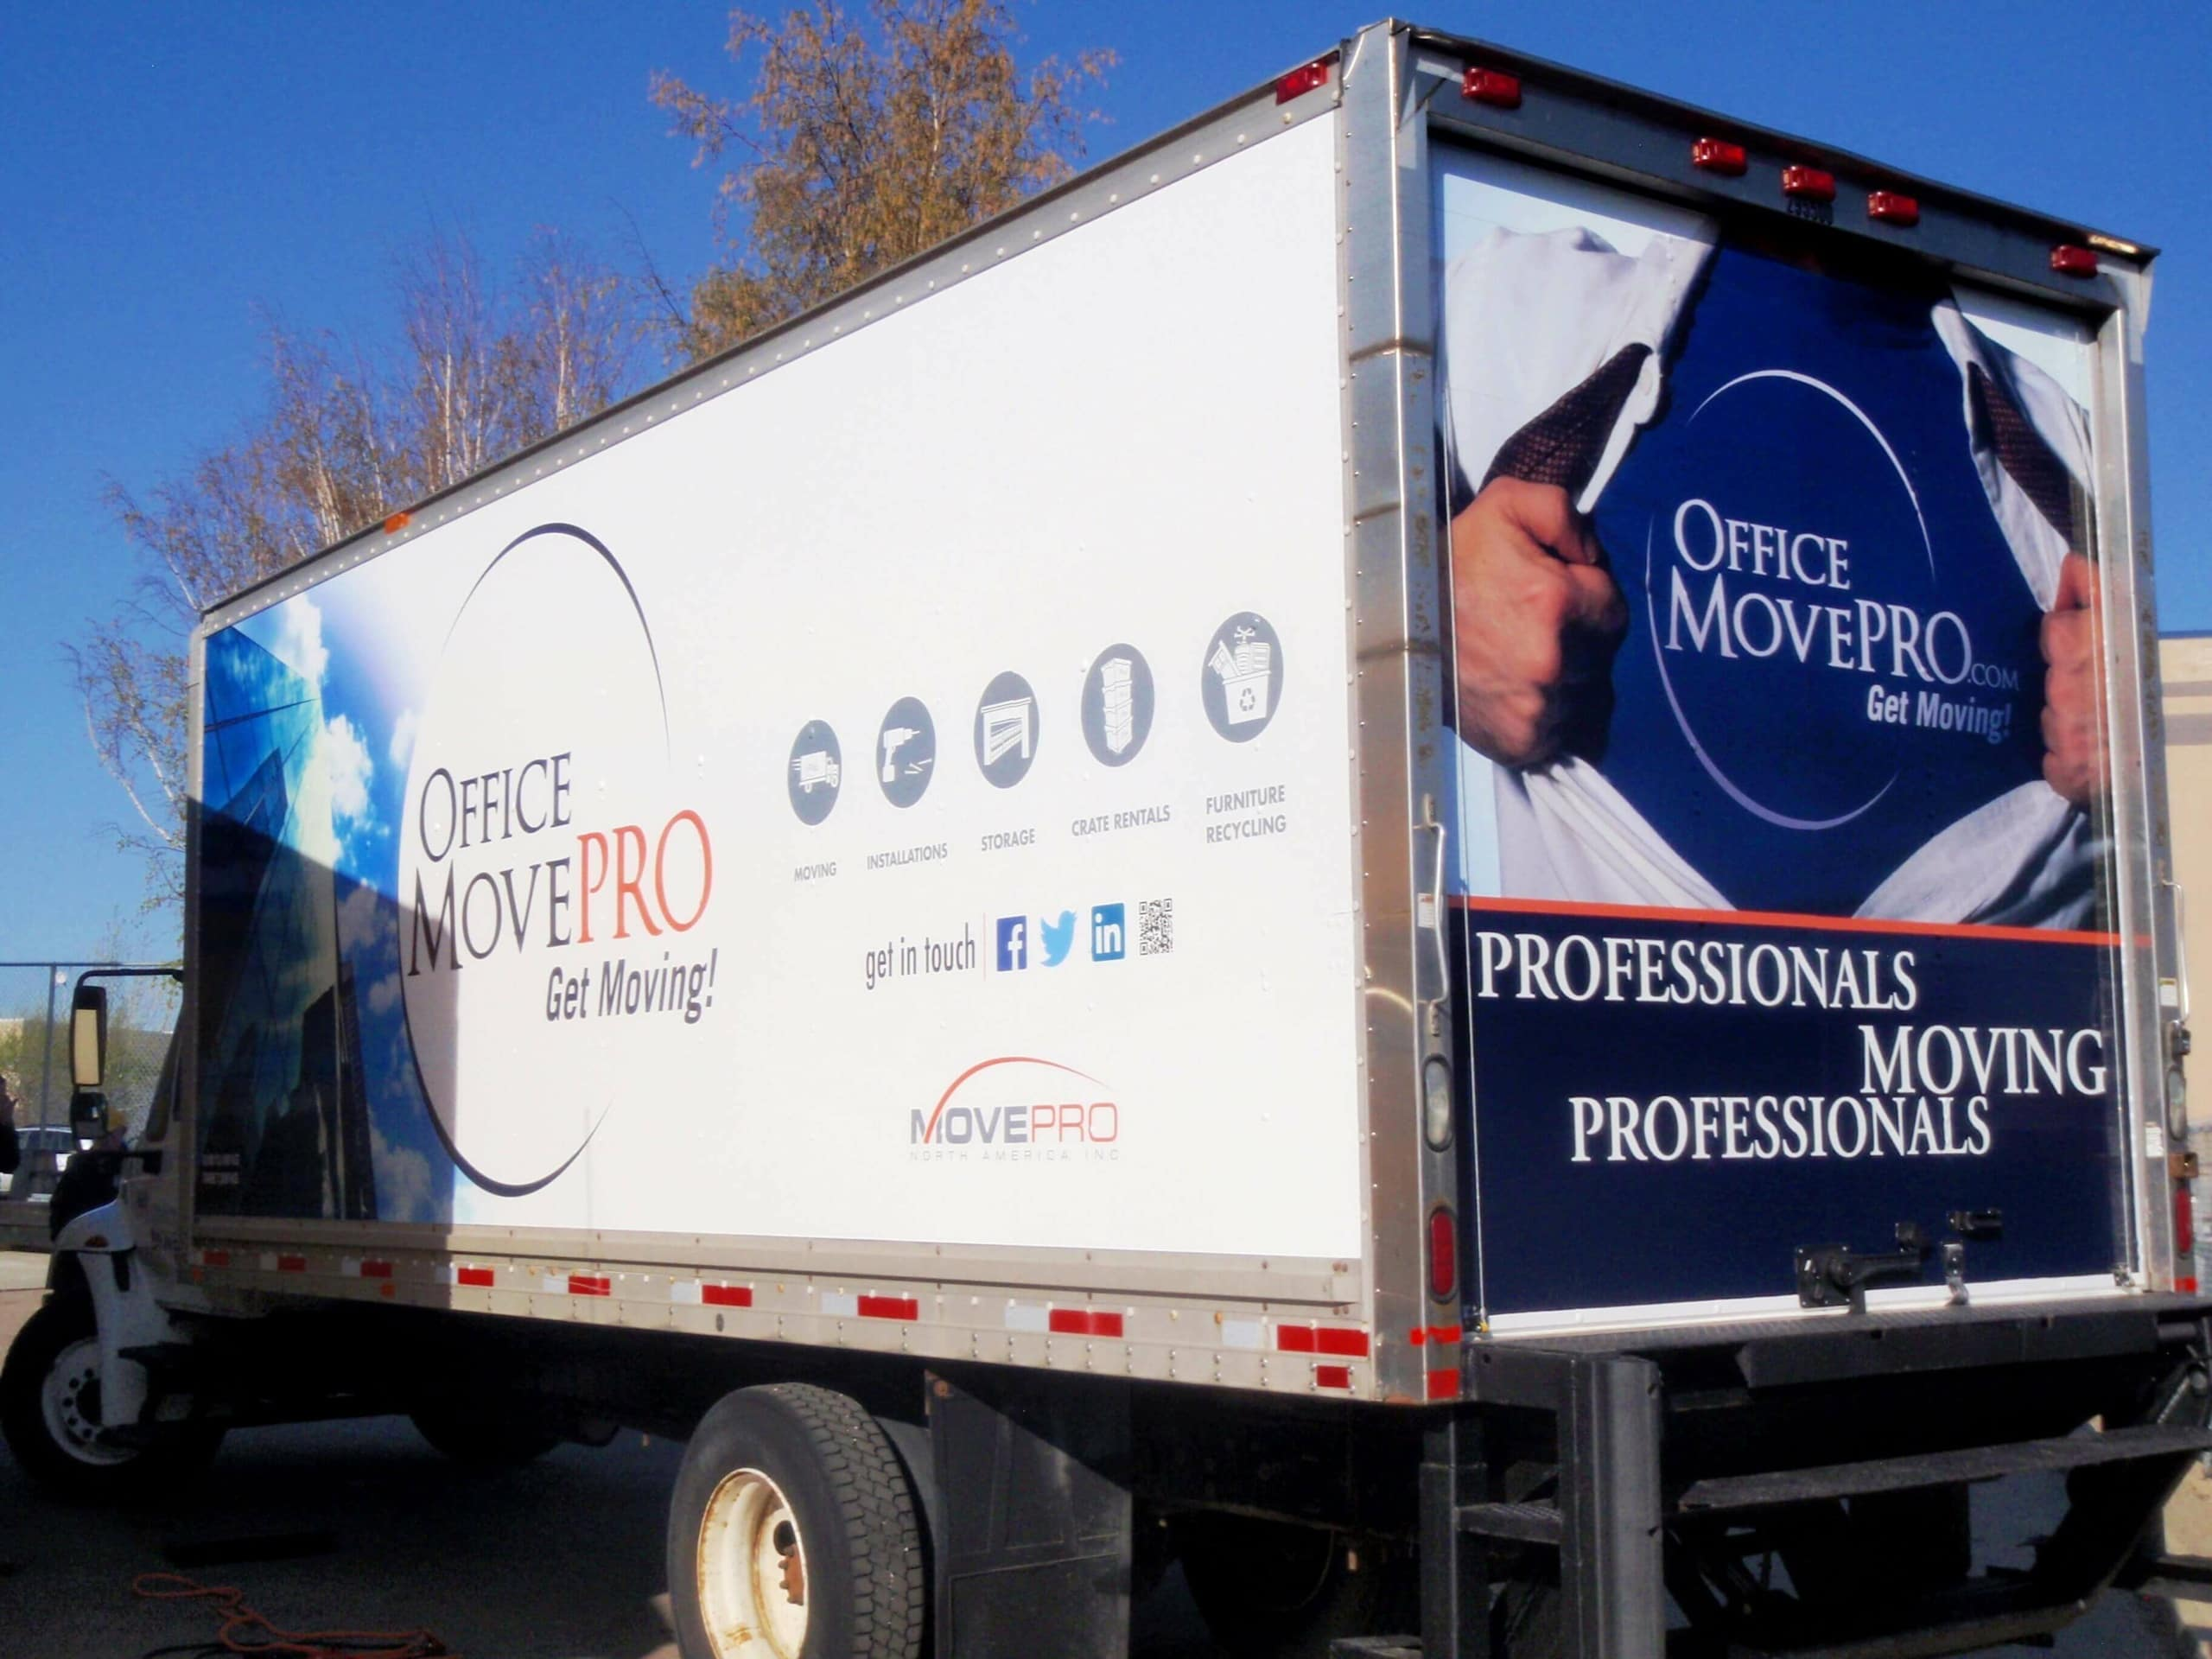 officemovepro-truck-decals-wrap-2